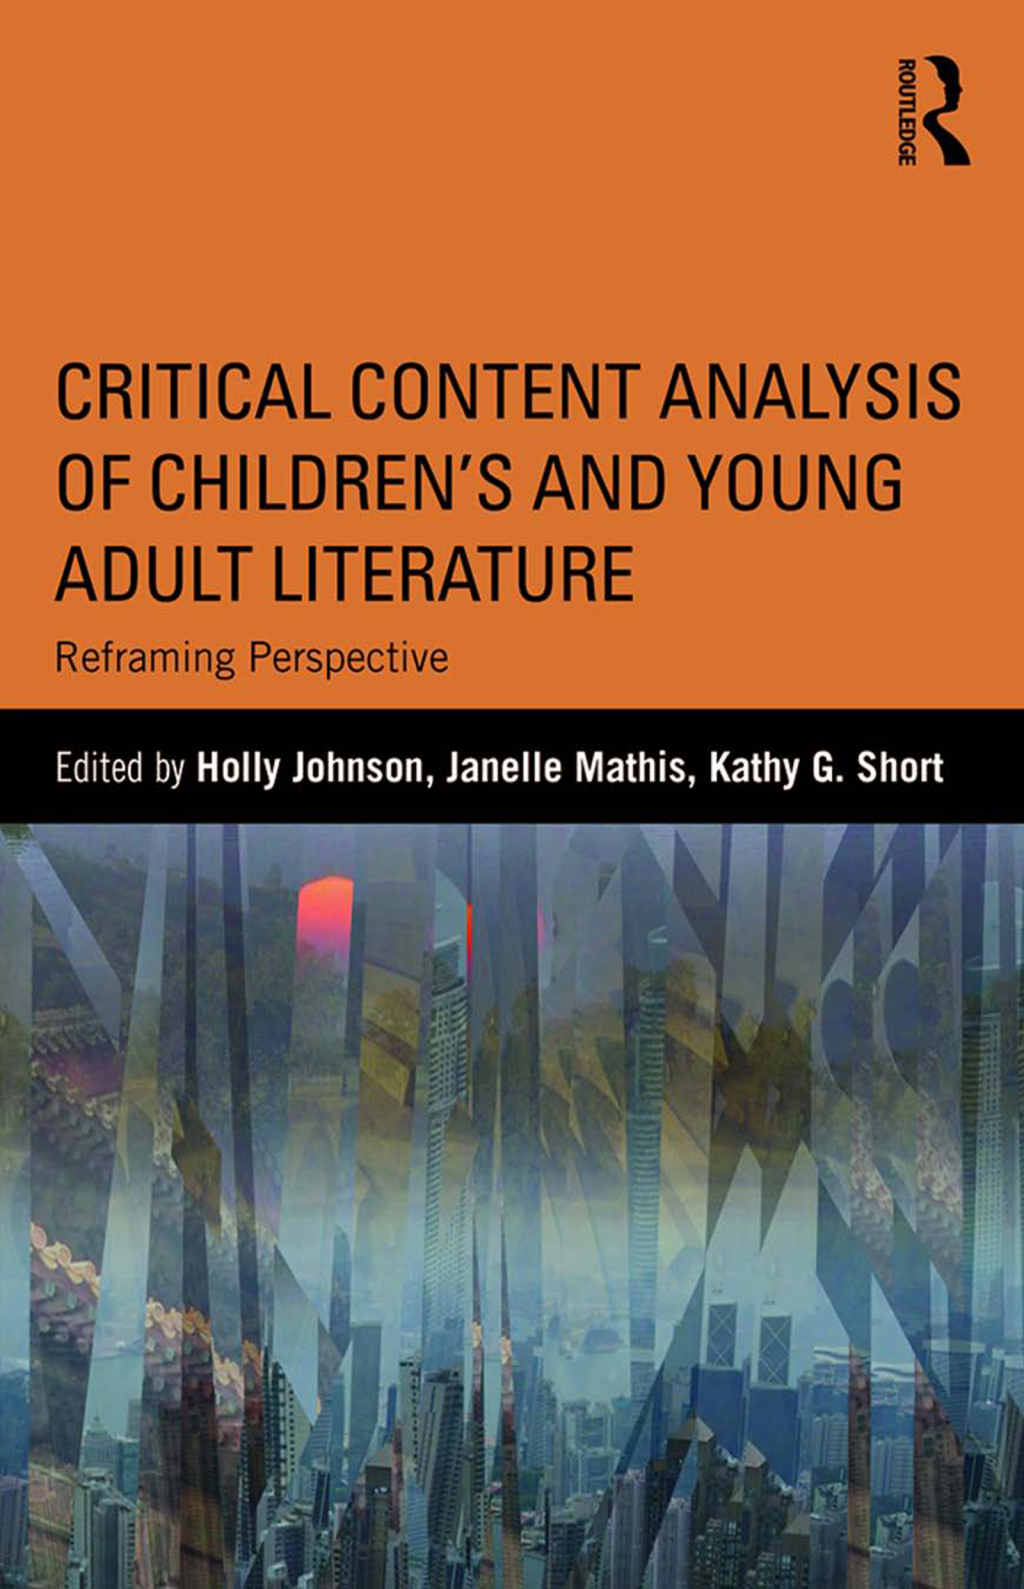 Critical Content Analysis of Children's and Young Adult Literature (ebook) eBooks